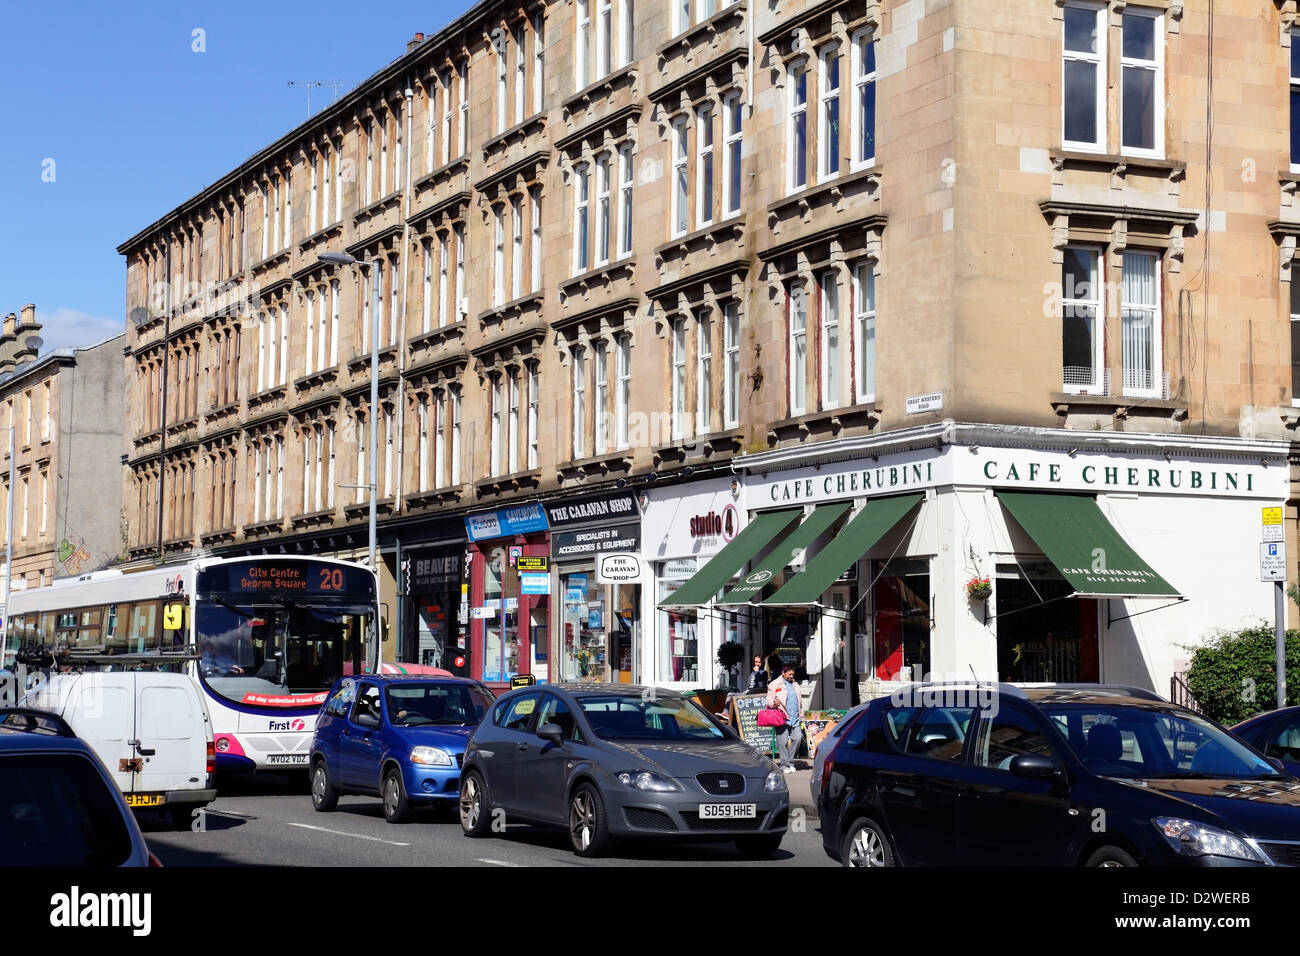 Great Western Road in Glasgow, Scotland, UK - Stock Image